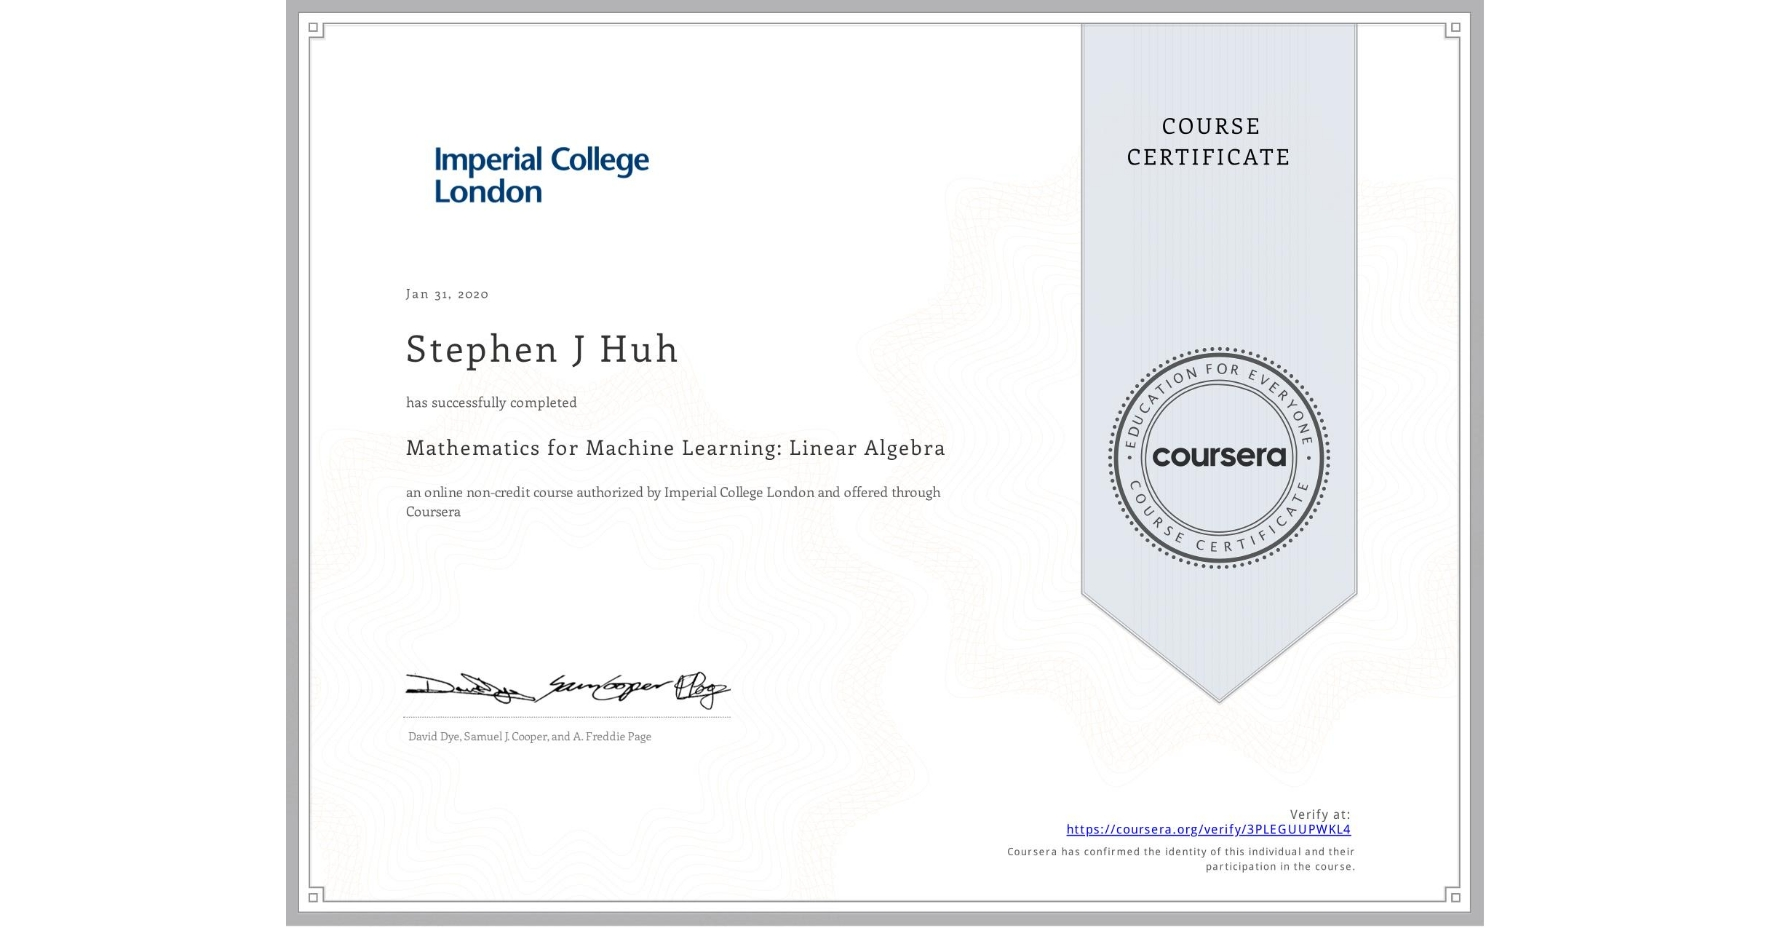 View certificate for Stephen J Huh, Mathematics for Machine Learning: Linear Algebra, an online non-credit course authorized by Imperial College London and offered through Coursera